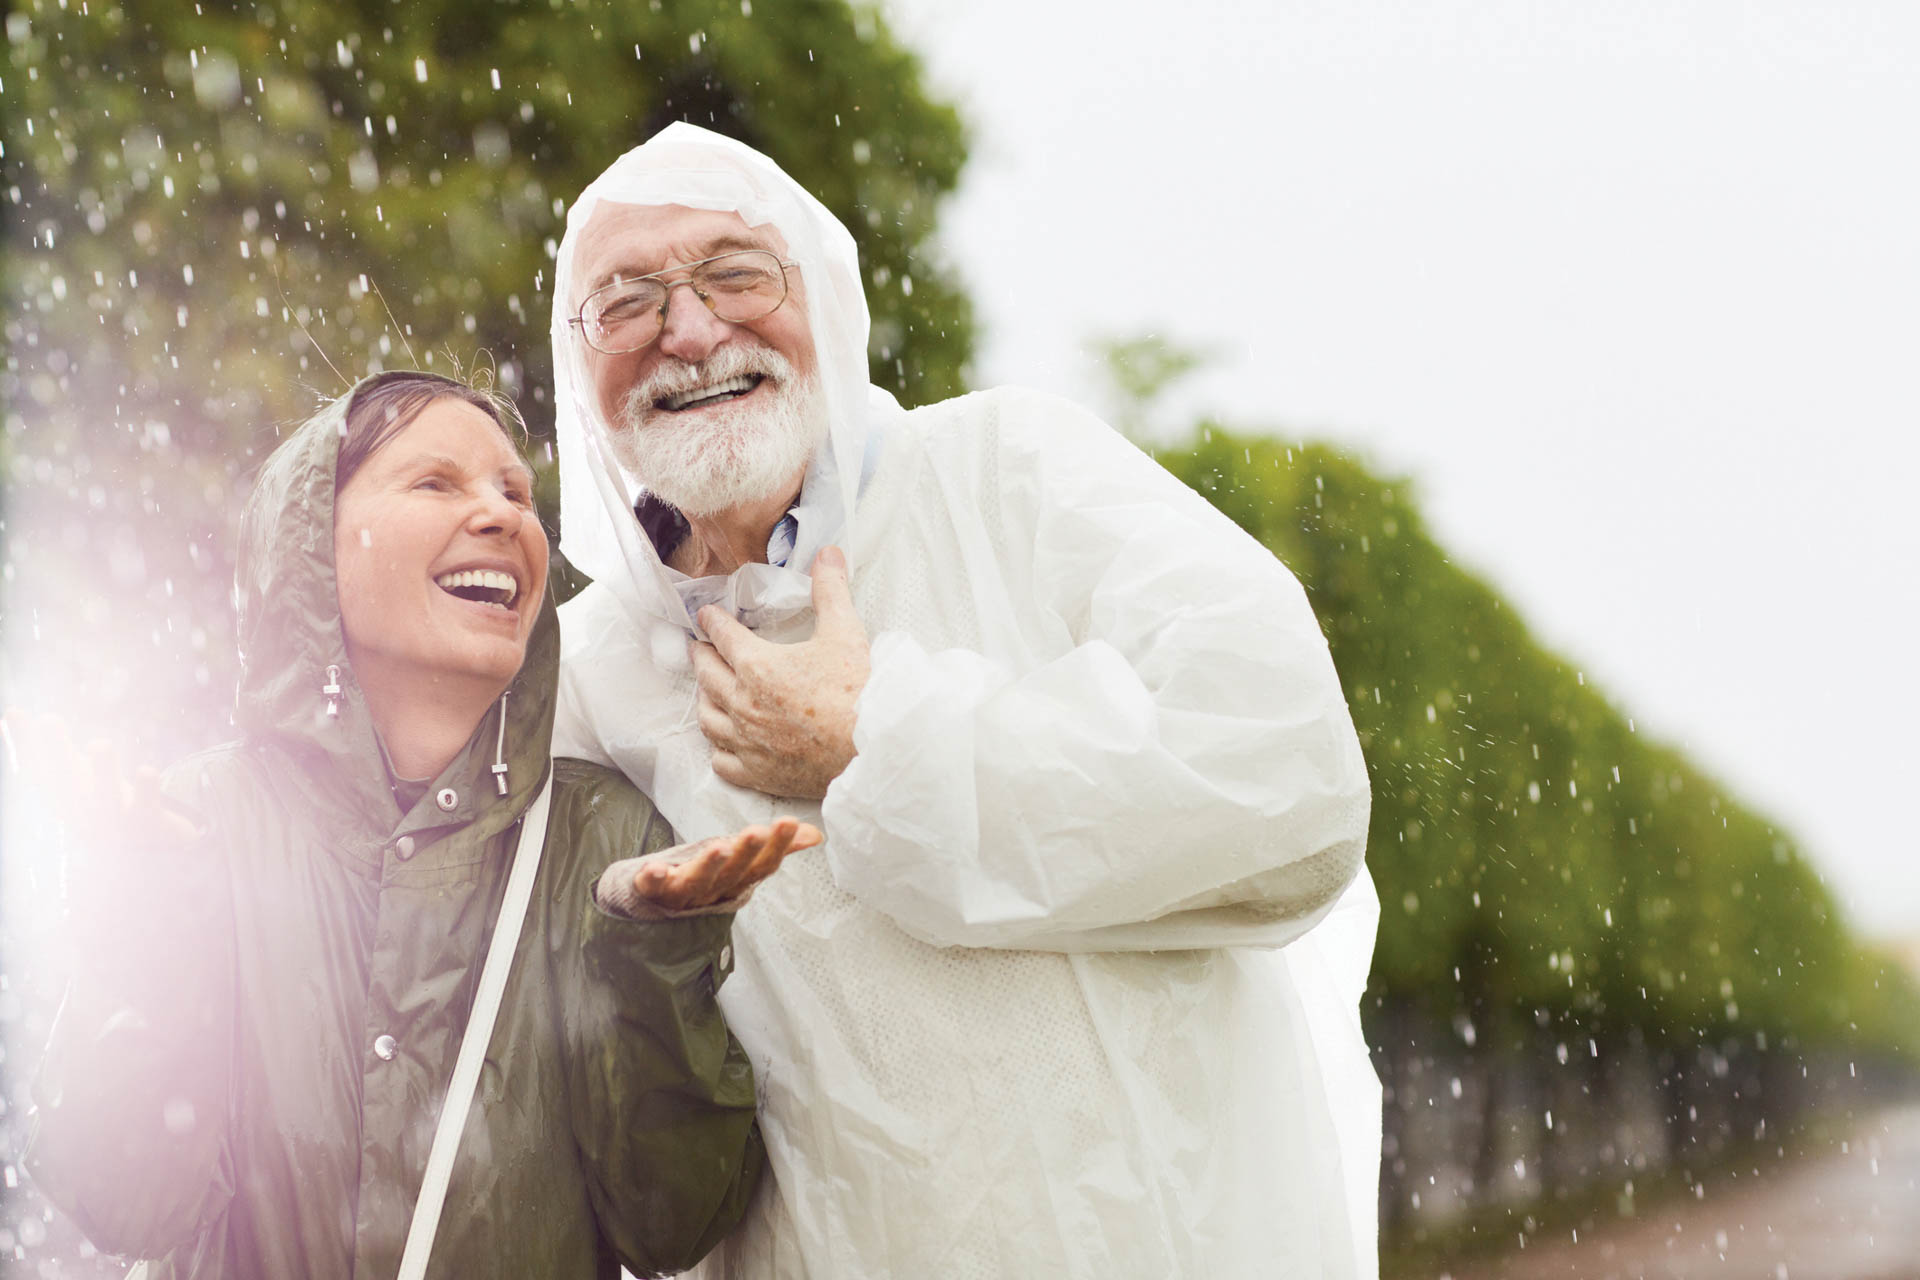 Cheerful aged woman catching raindrops on palms with her laughing husband near by.